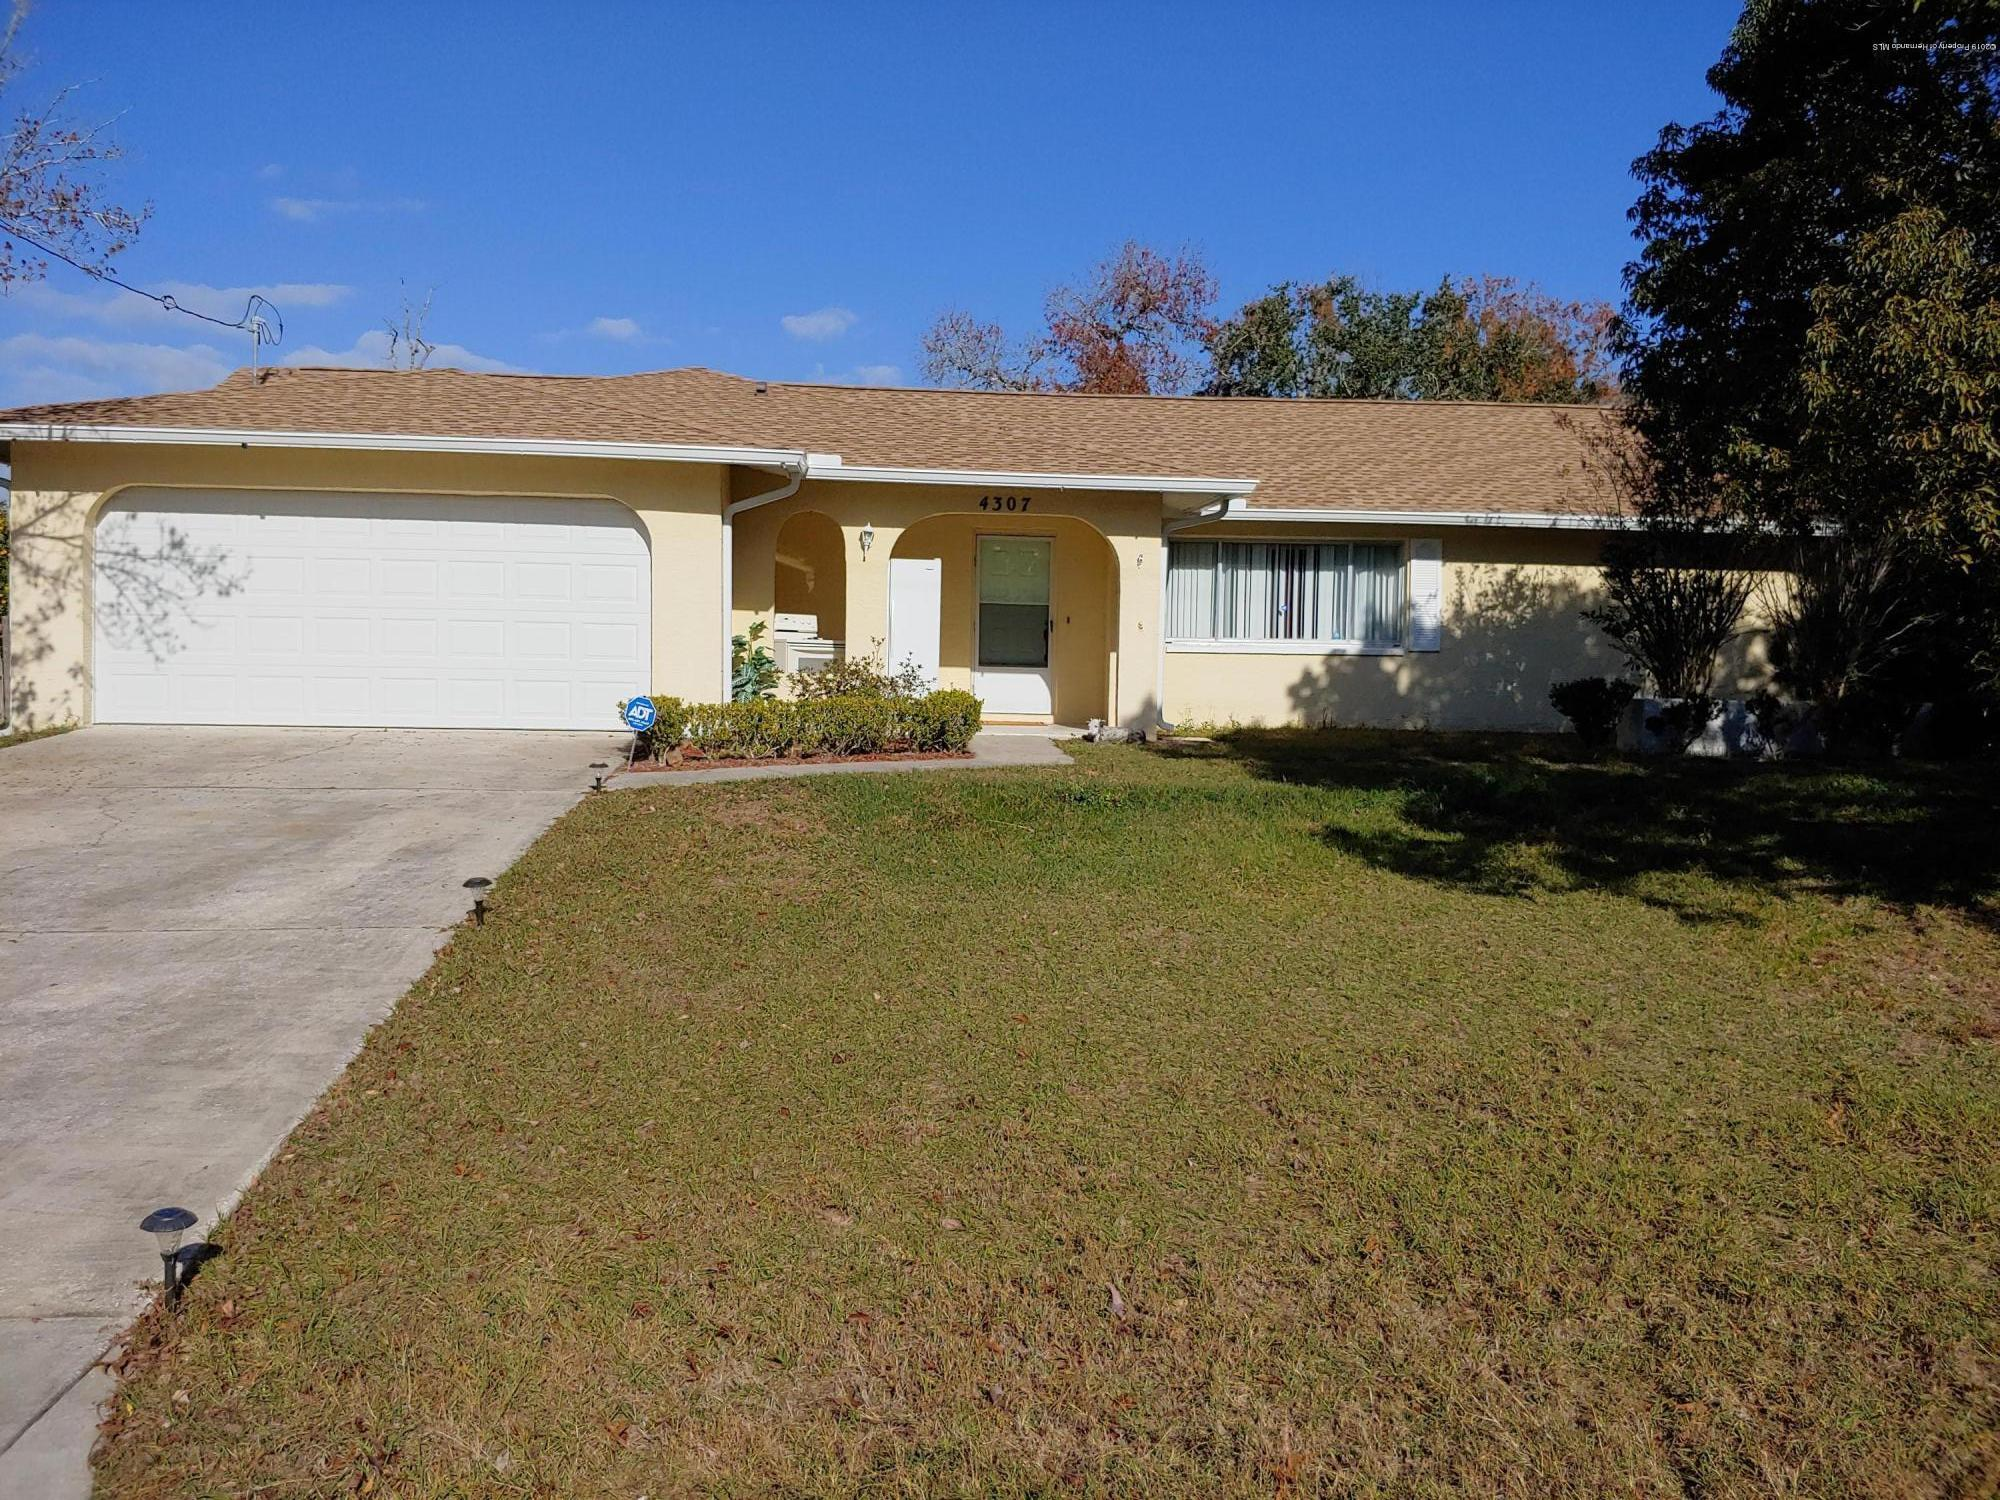 4307 Goldcoast Avenue, Spring Hill, Florida 34609, 3 Bedrooms Bedrooms, ,2 BathroomsBathrooms,Residential,For Sale,Goldcoast,2198285